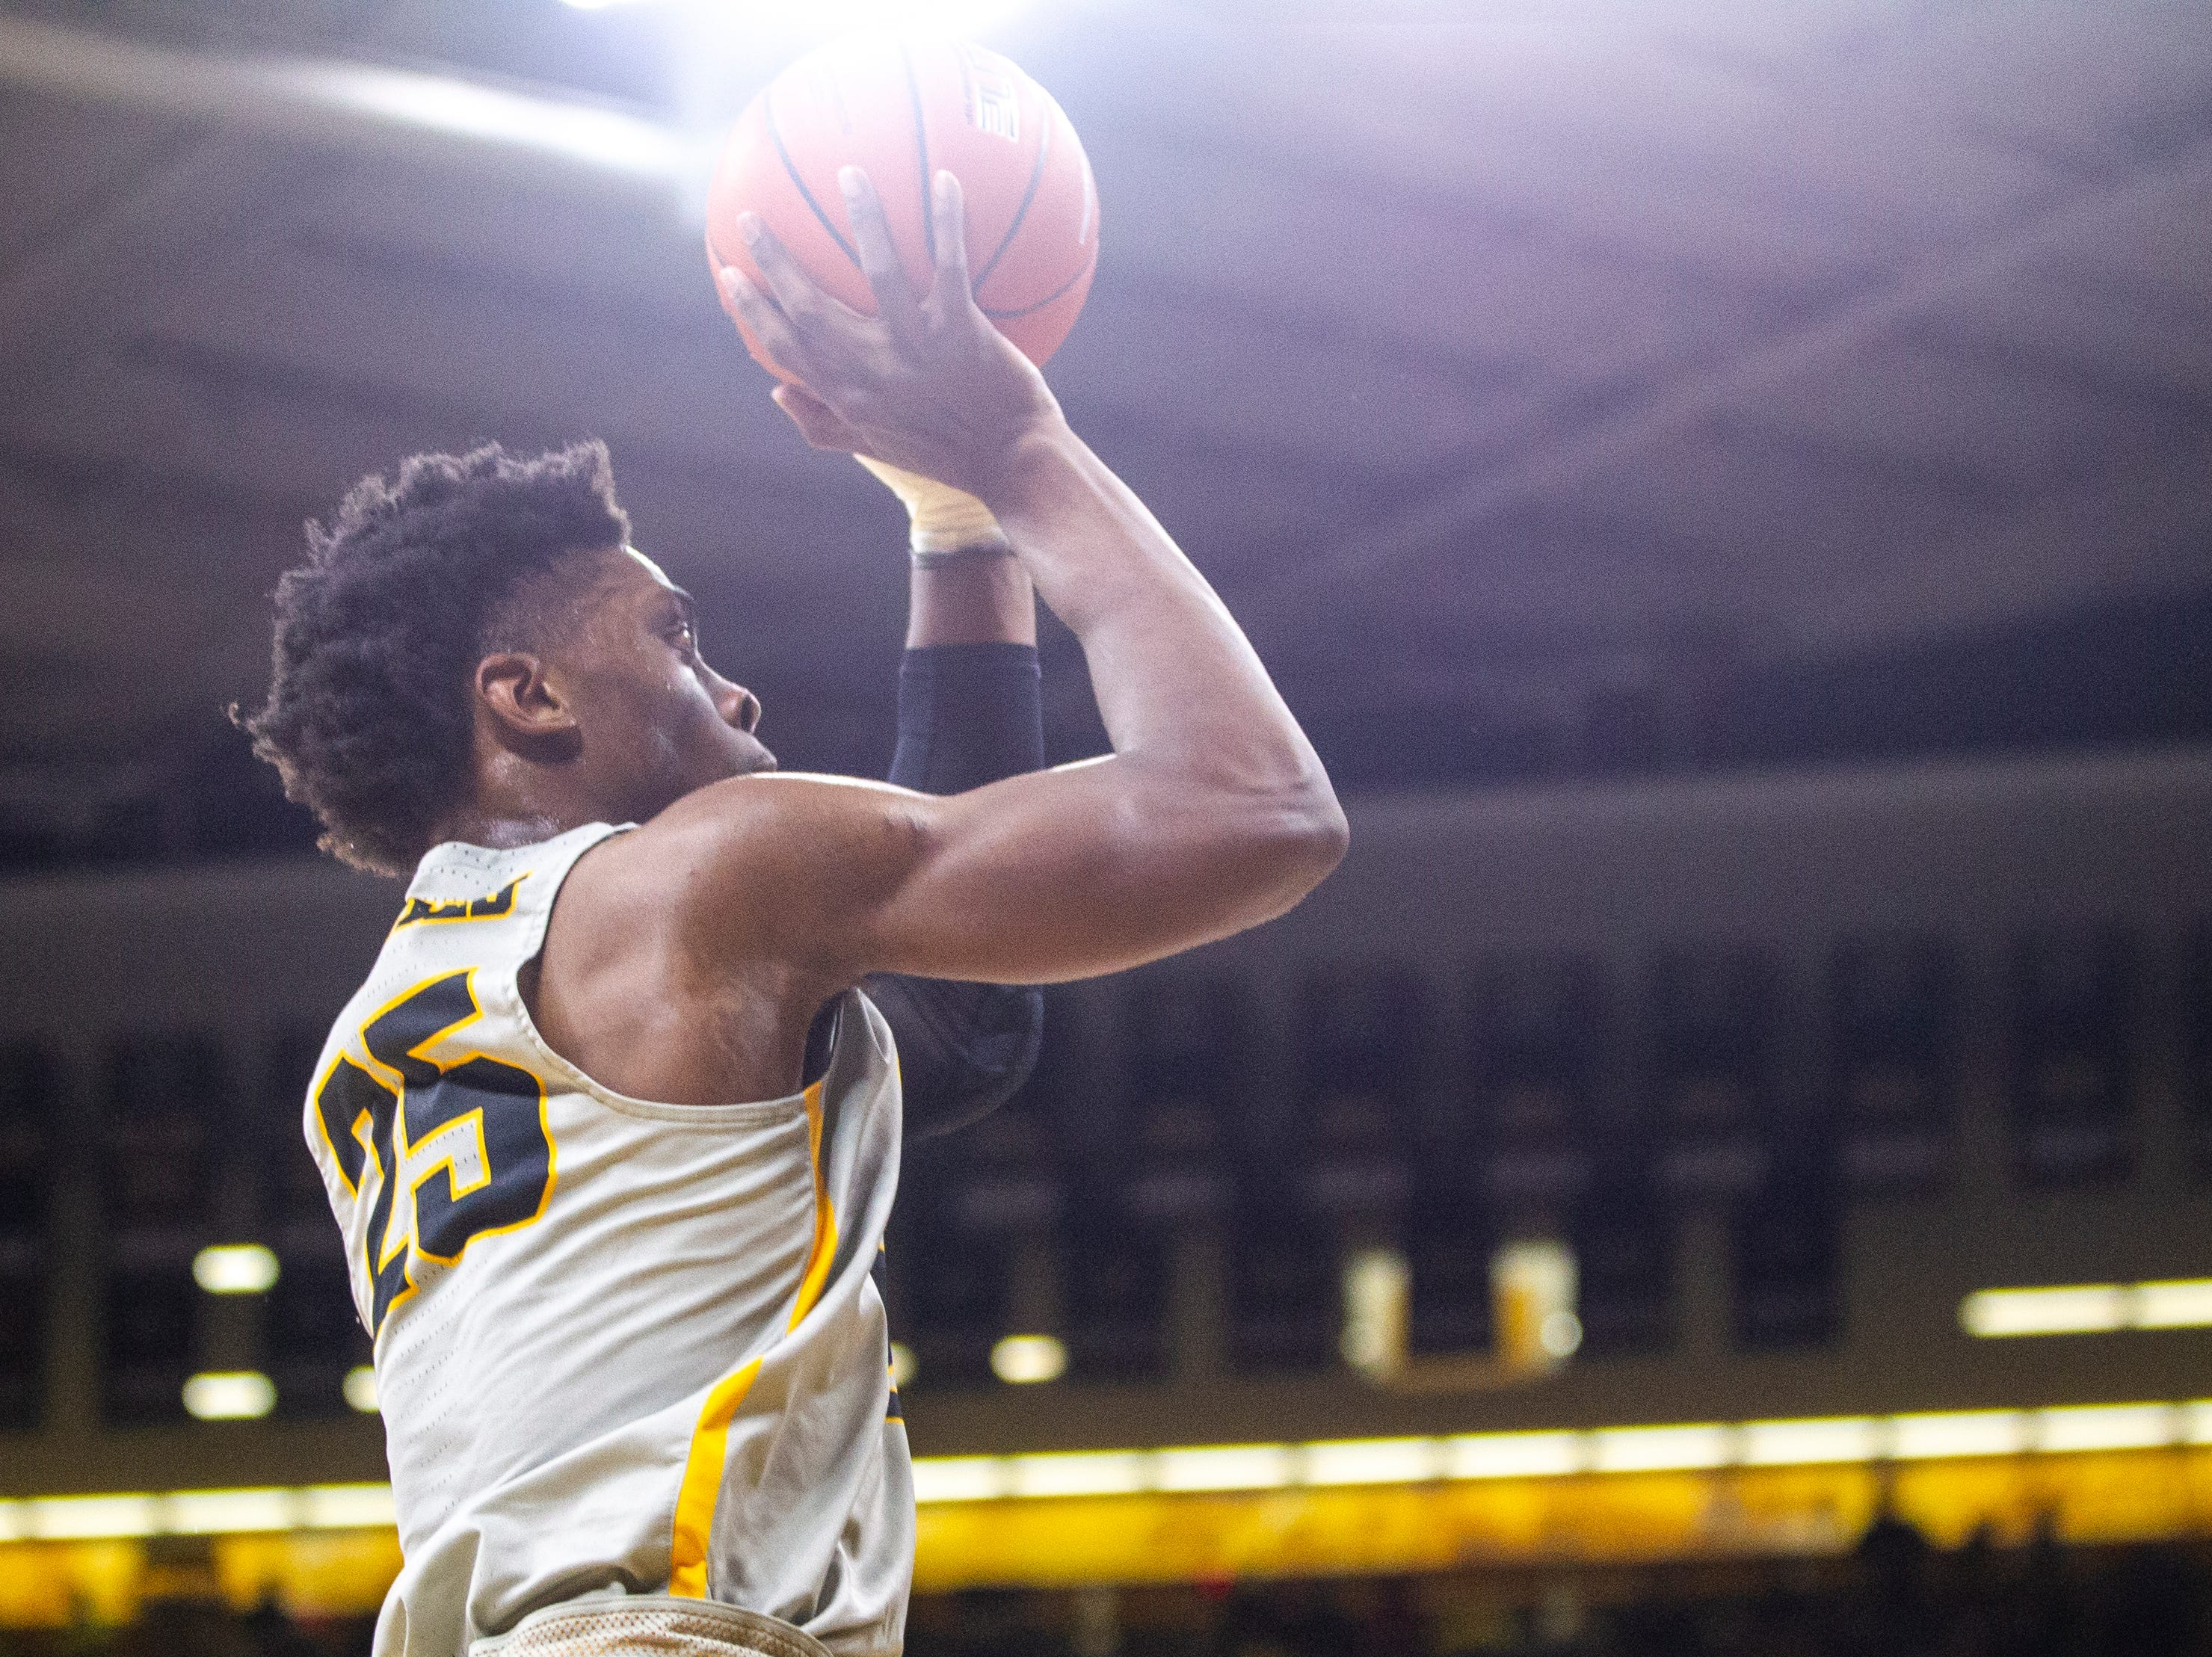 Iowa forward Tyler Cook (25) shoots a basket during a NCAA Big Ten Conference men's basketball game on Thursday, Jan. 24, 2019, at Carver-Hawkeye Arena in Iowa City, Iowa.